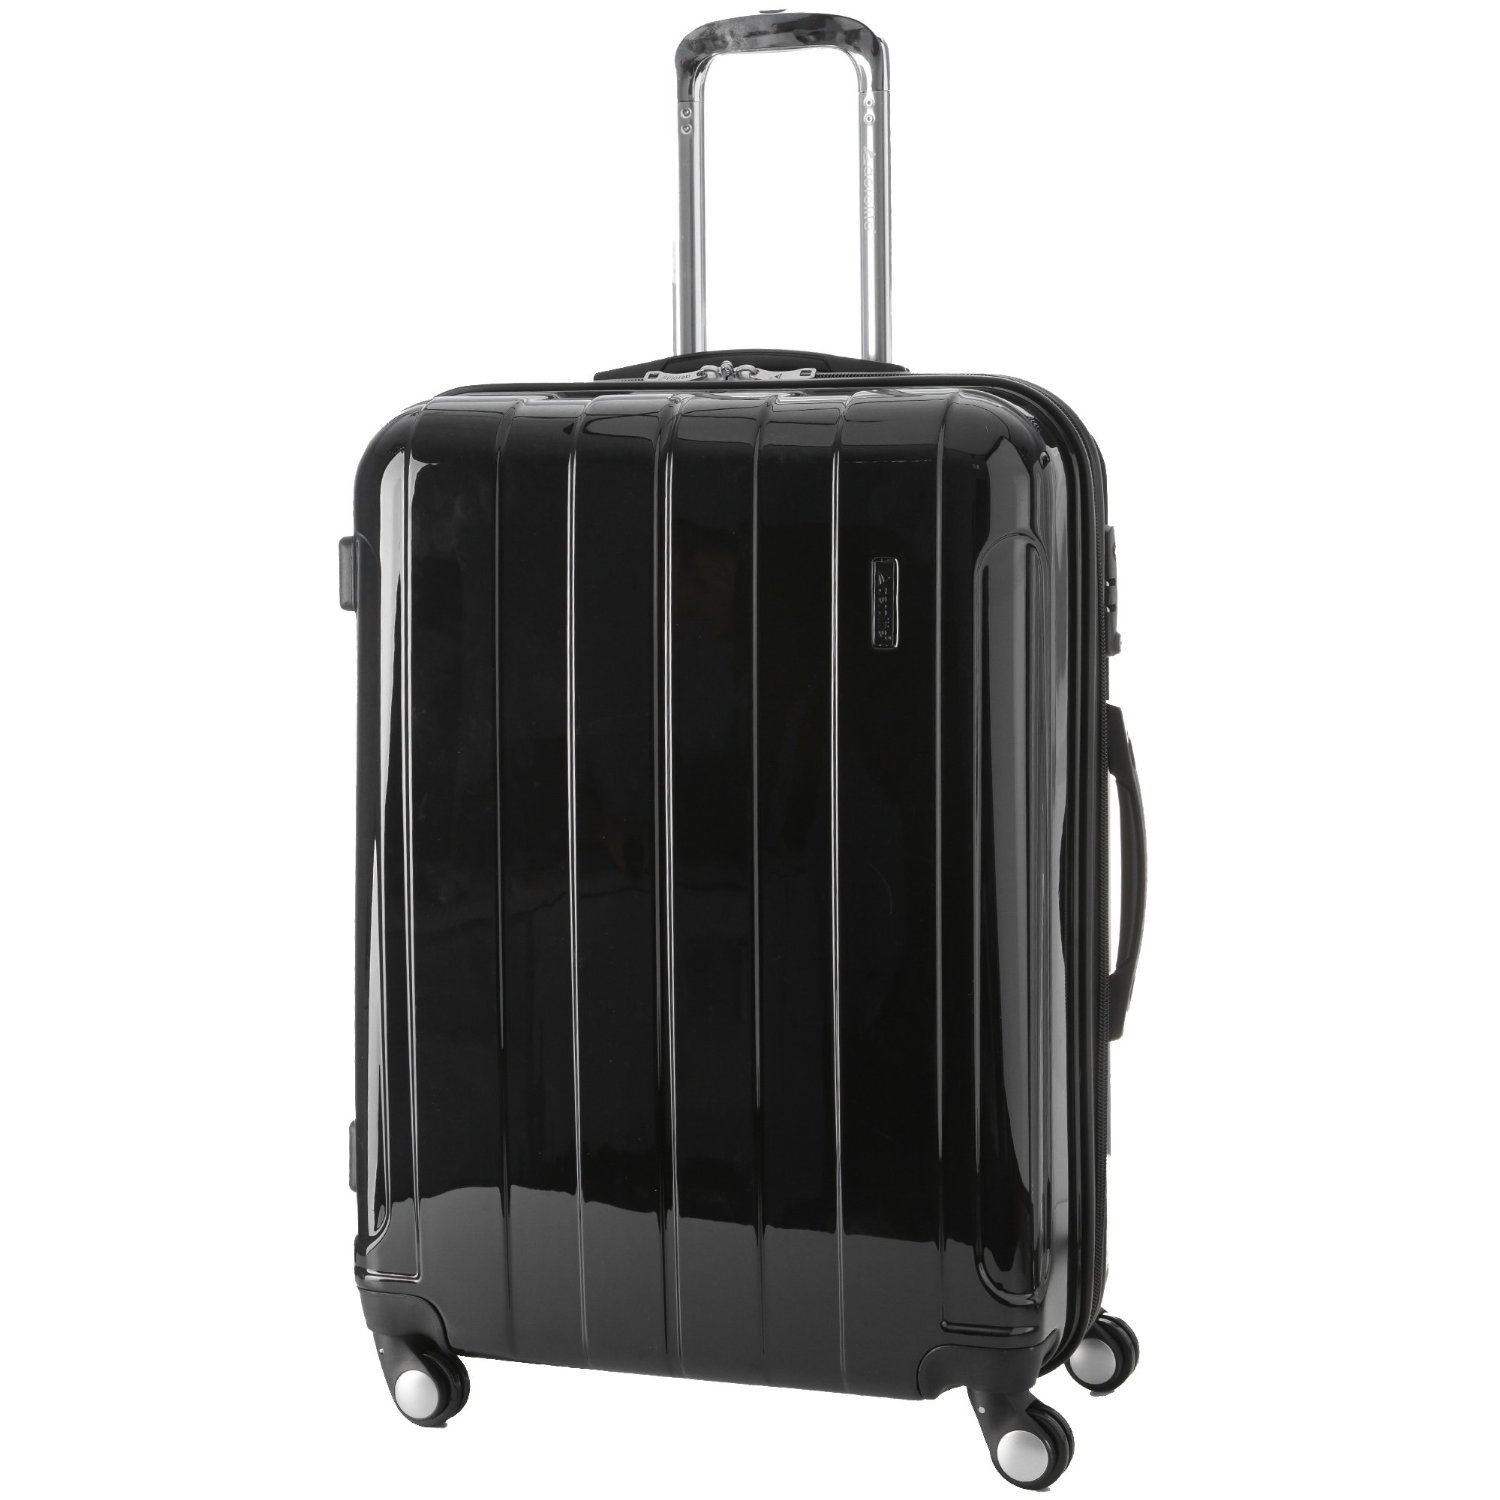 Aerolite 4-Wheel Spinner Hardshell Cabin Hand Luggage Suitcase